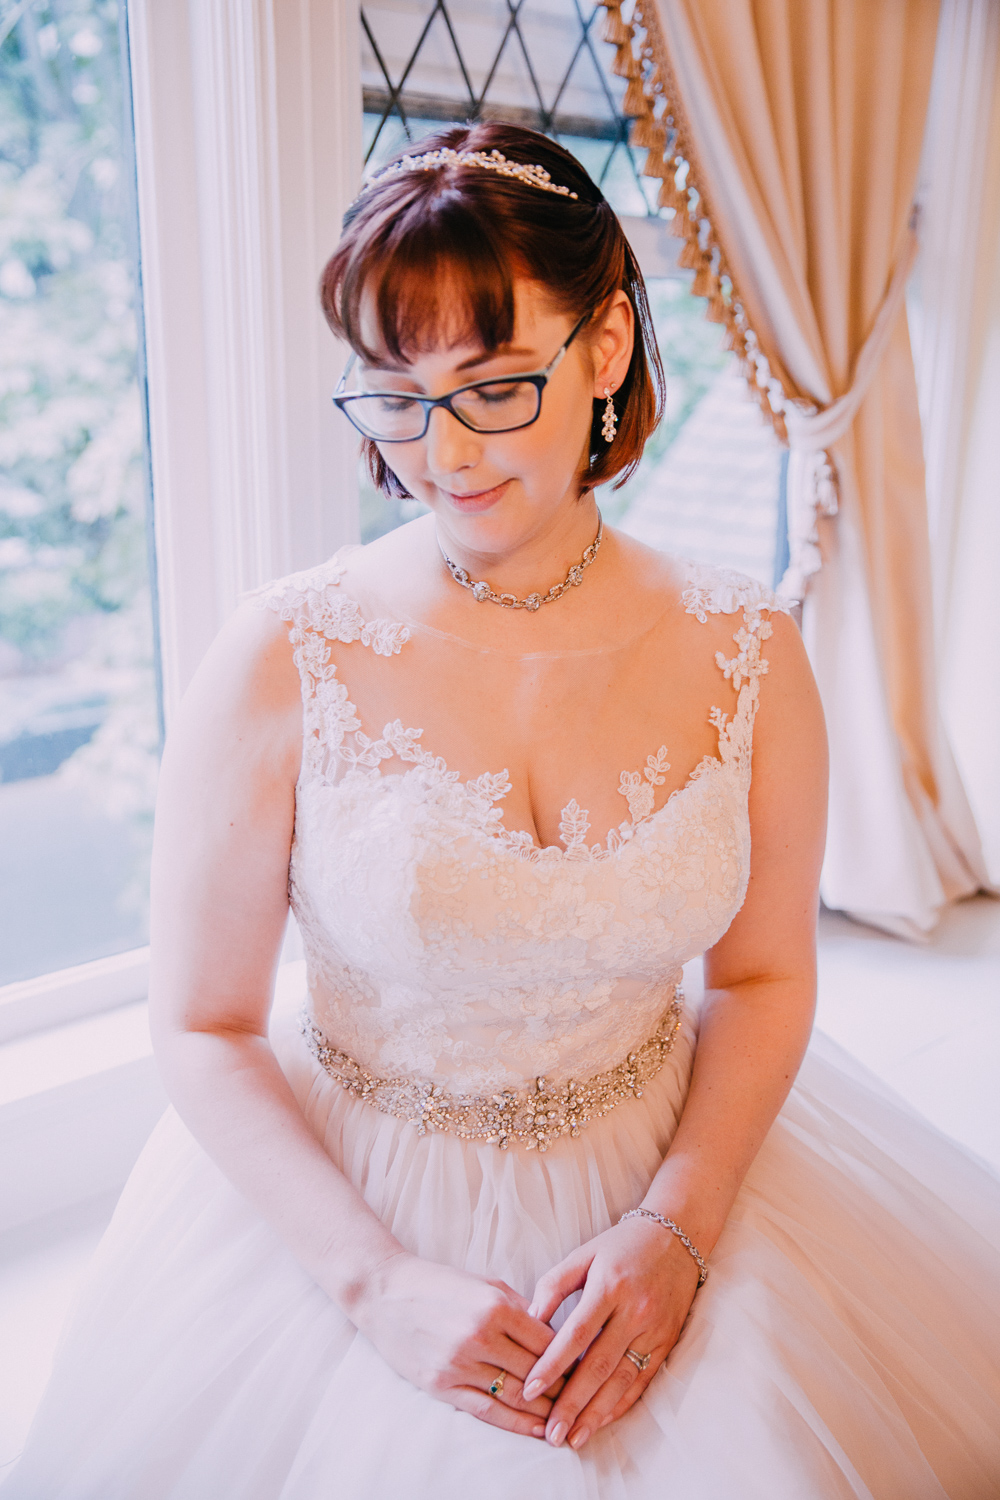 Sonia Primerano Photography Katie and Miguel Wedding Elopement Destination Seattle Stimson Green Mansion